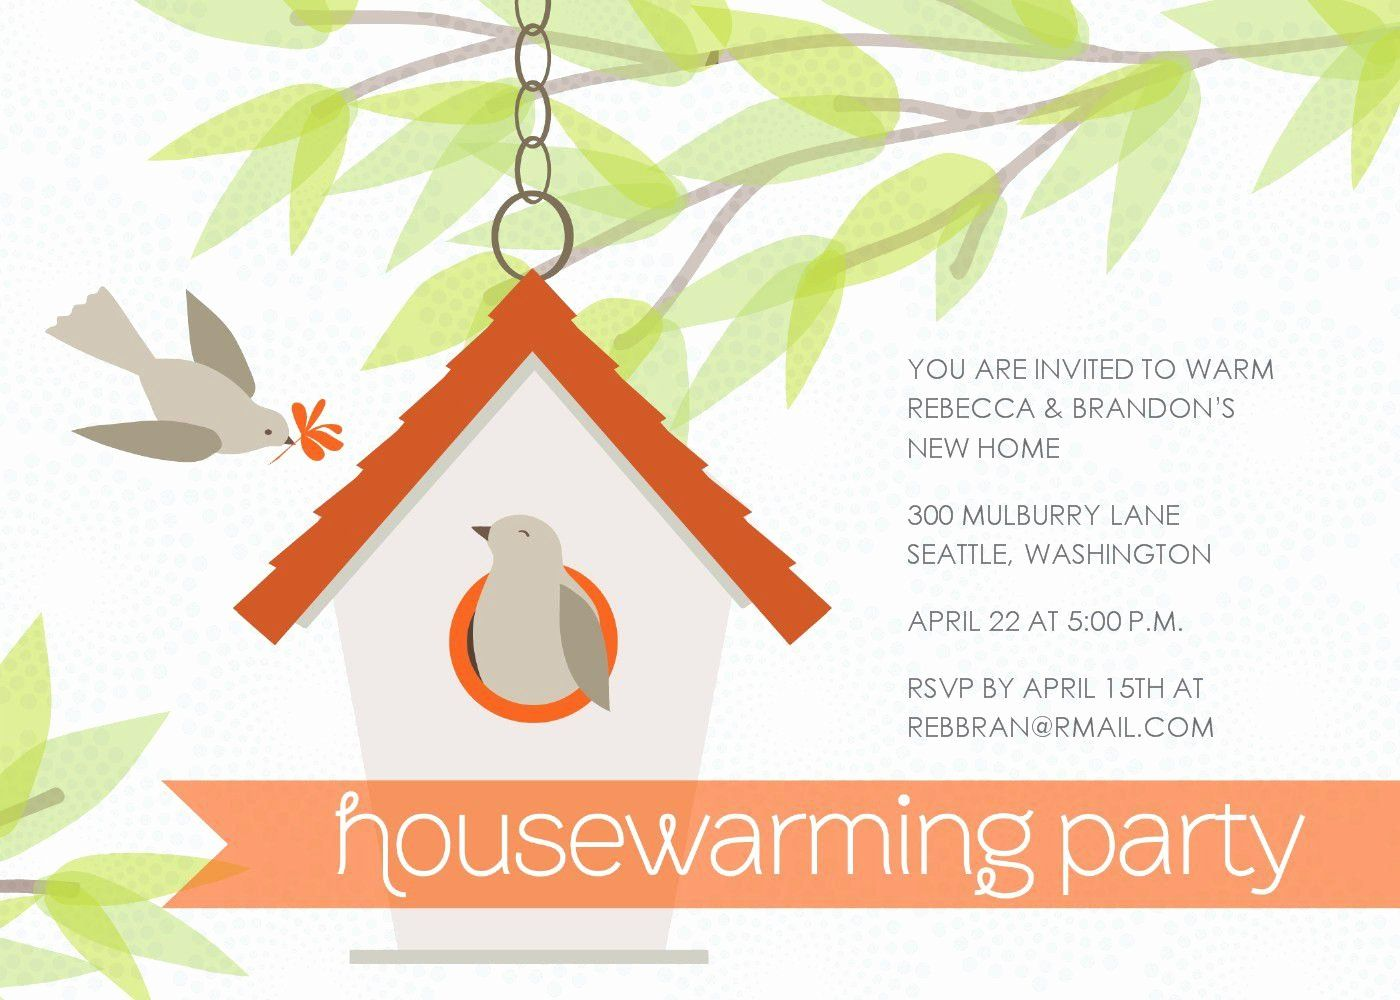 Housewarming Images For Invitation Luxury Housewarming Invitations C Housewarming Invitation Templates Housewarming Party Invitations House Warming Invitations